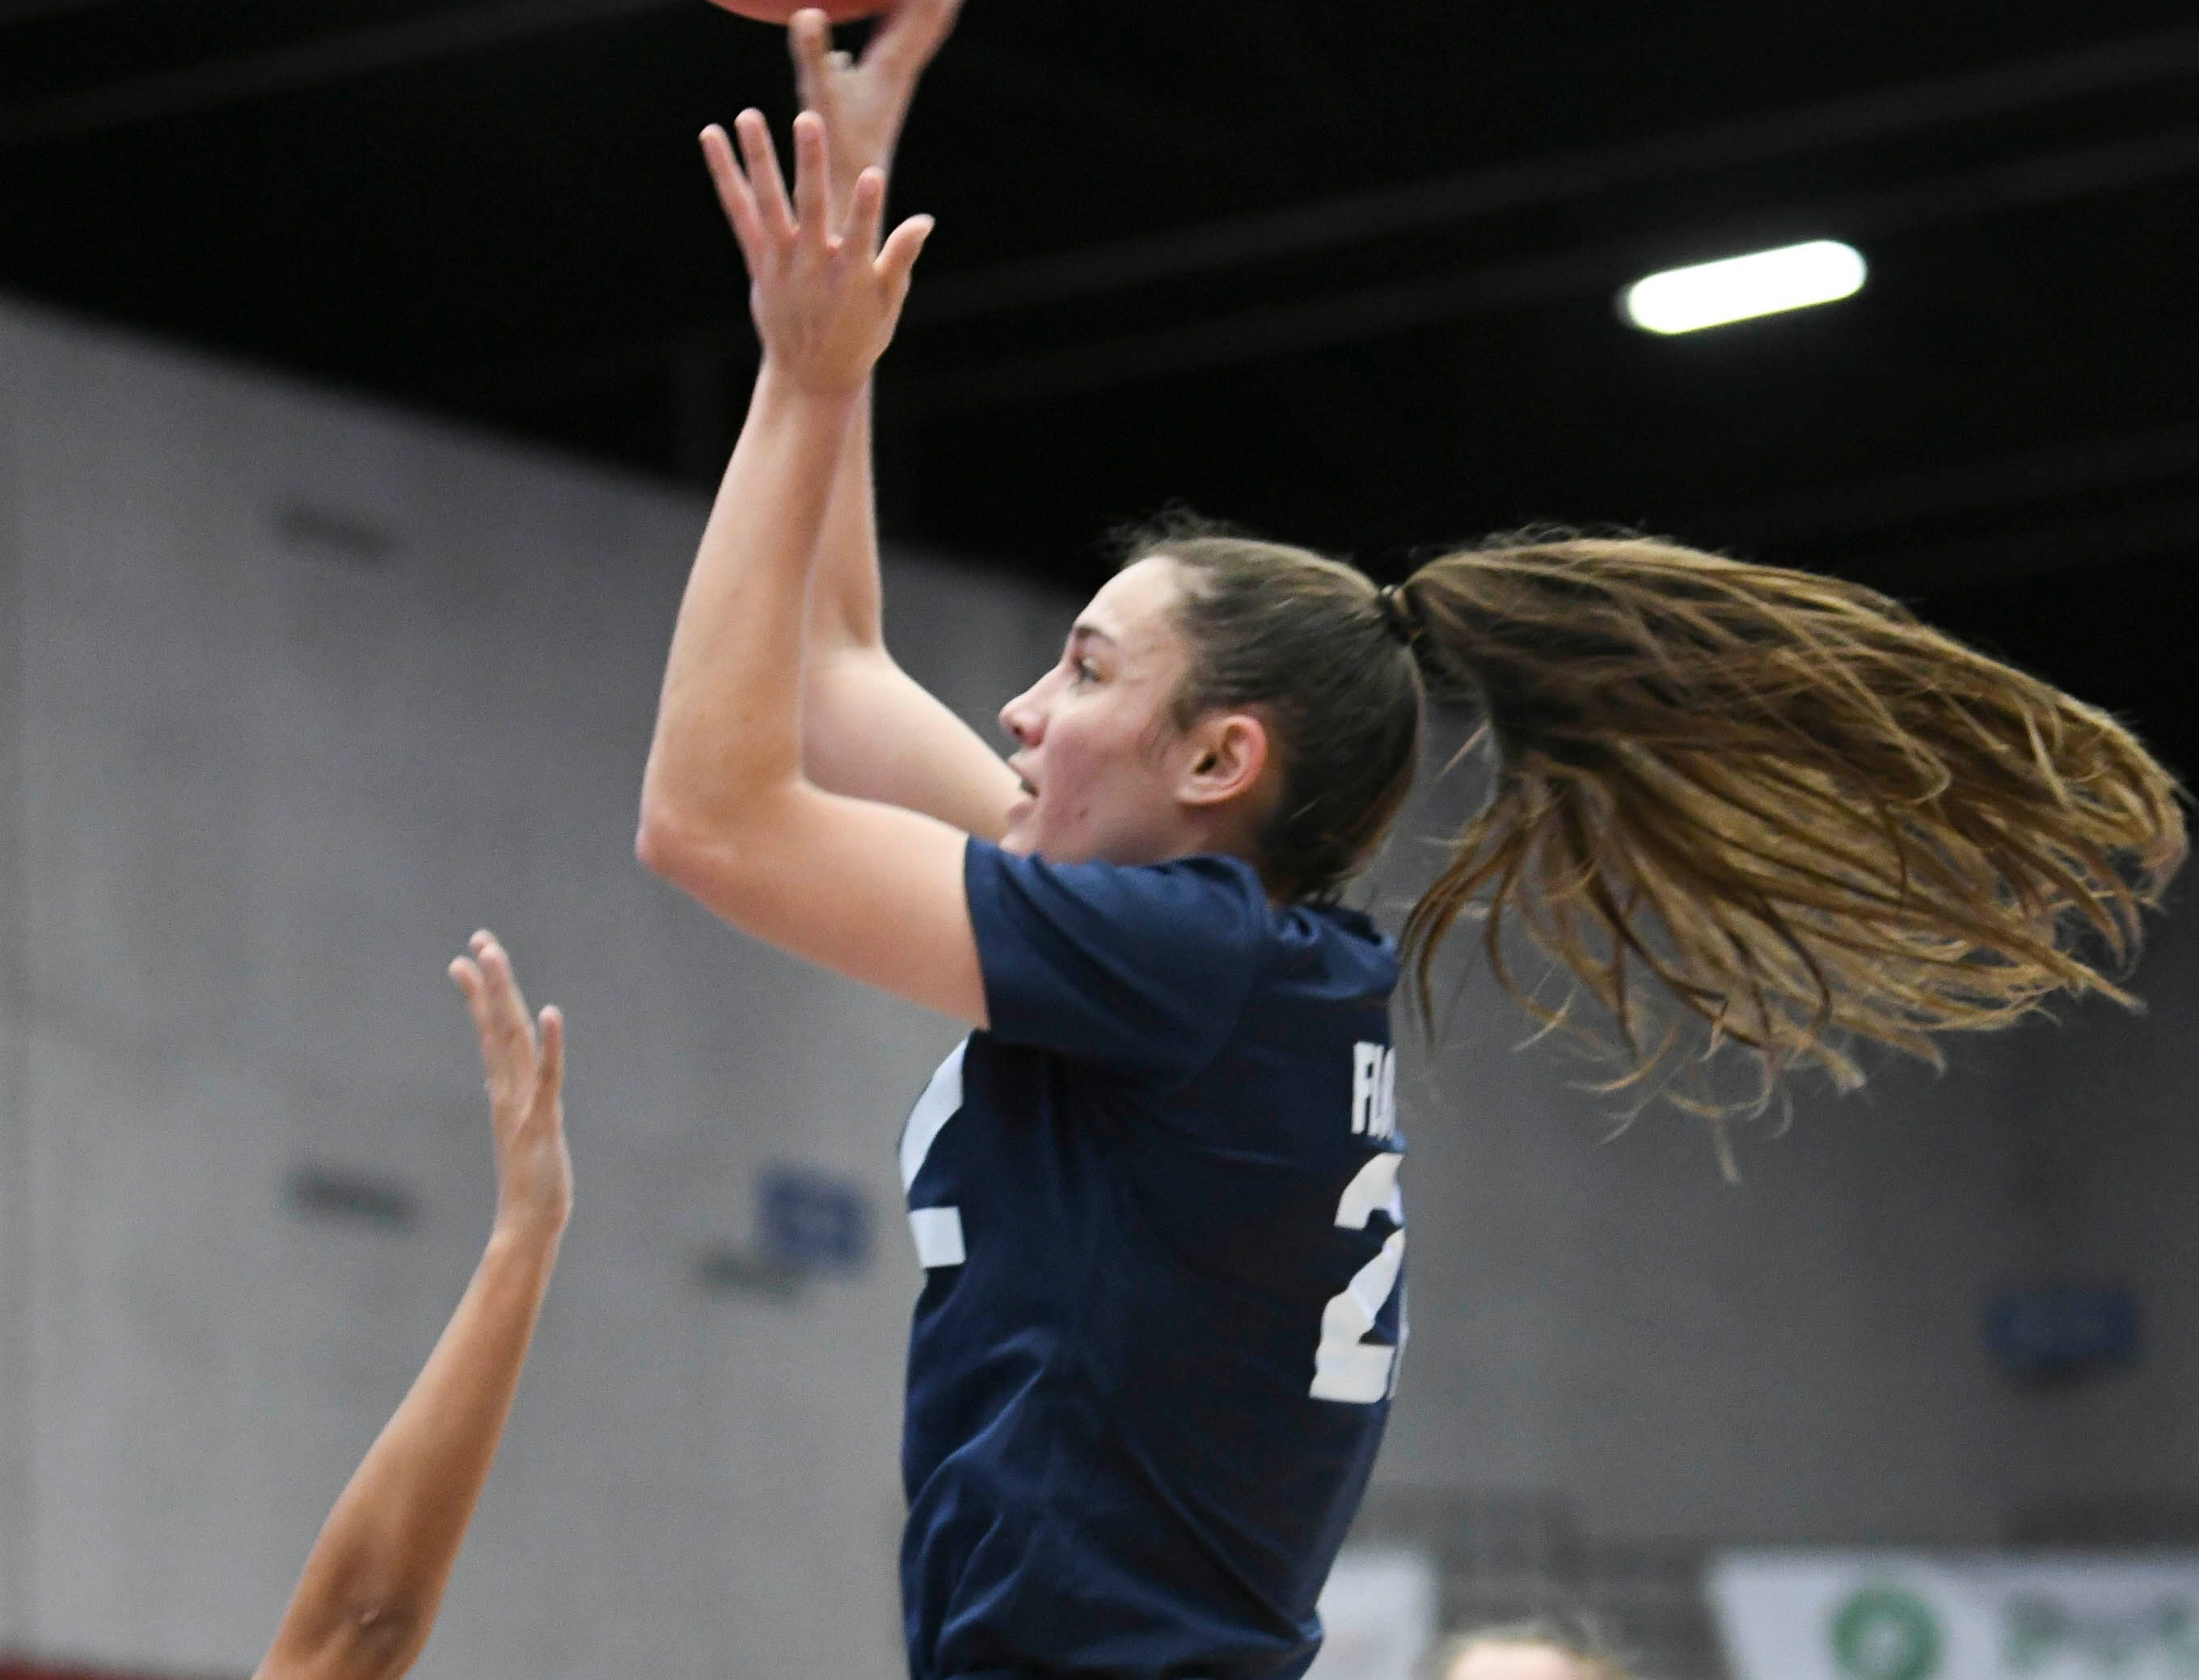 Aleah Sorrentino of Florida Prep takes a shot during Tuesday's Class 2A state championship game.